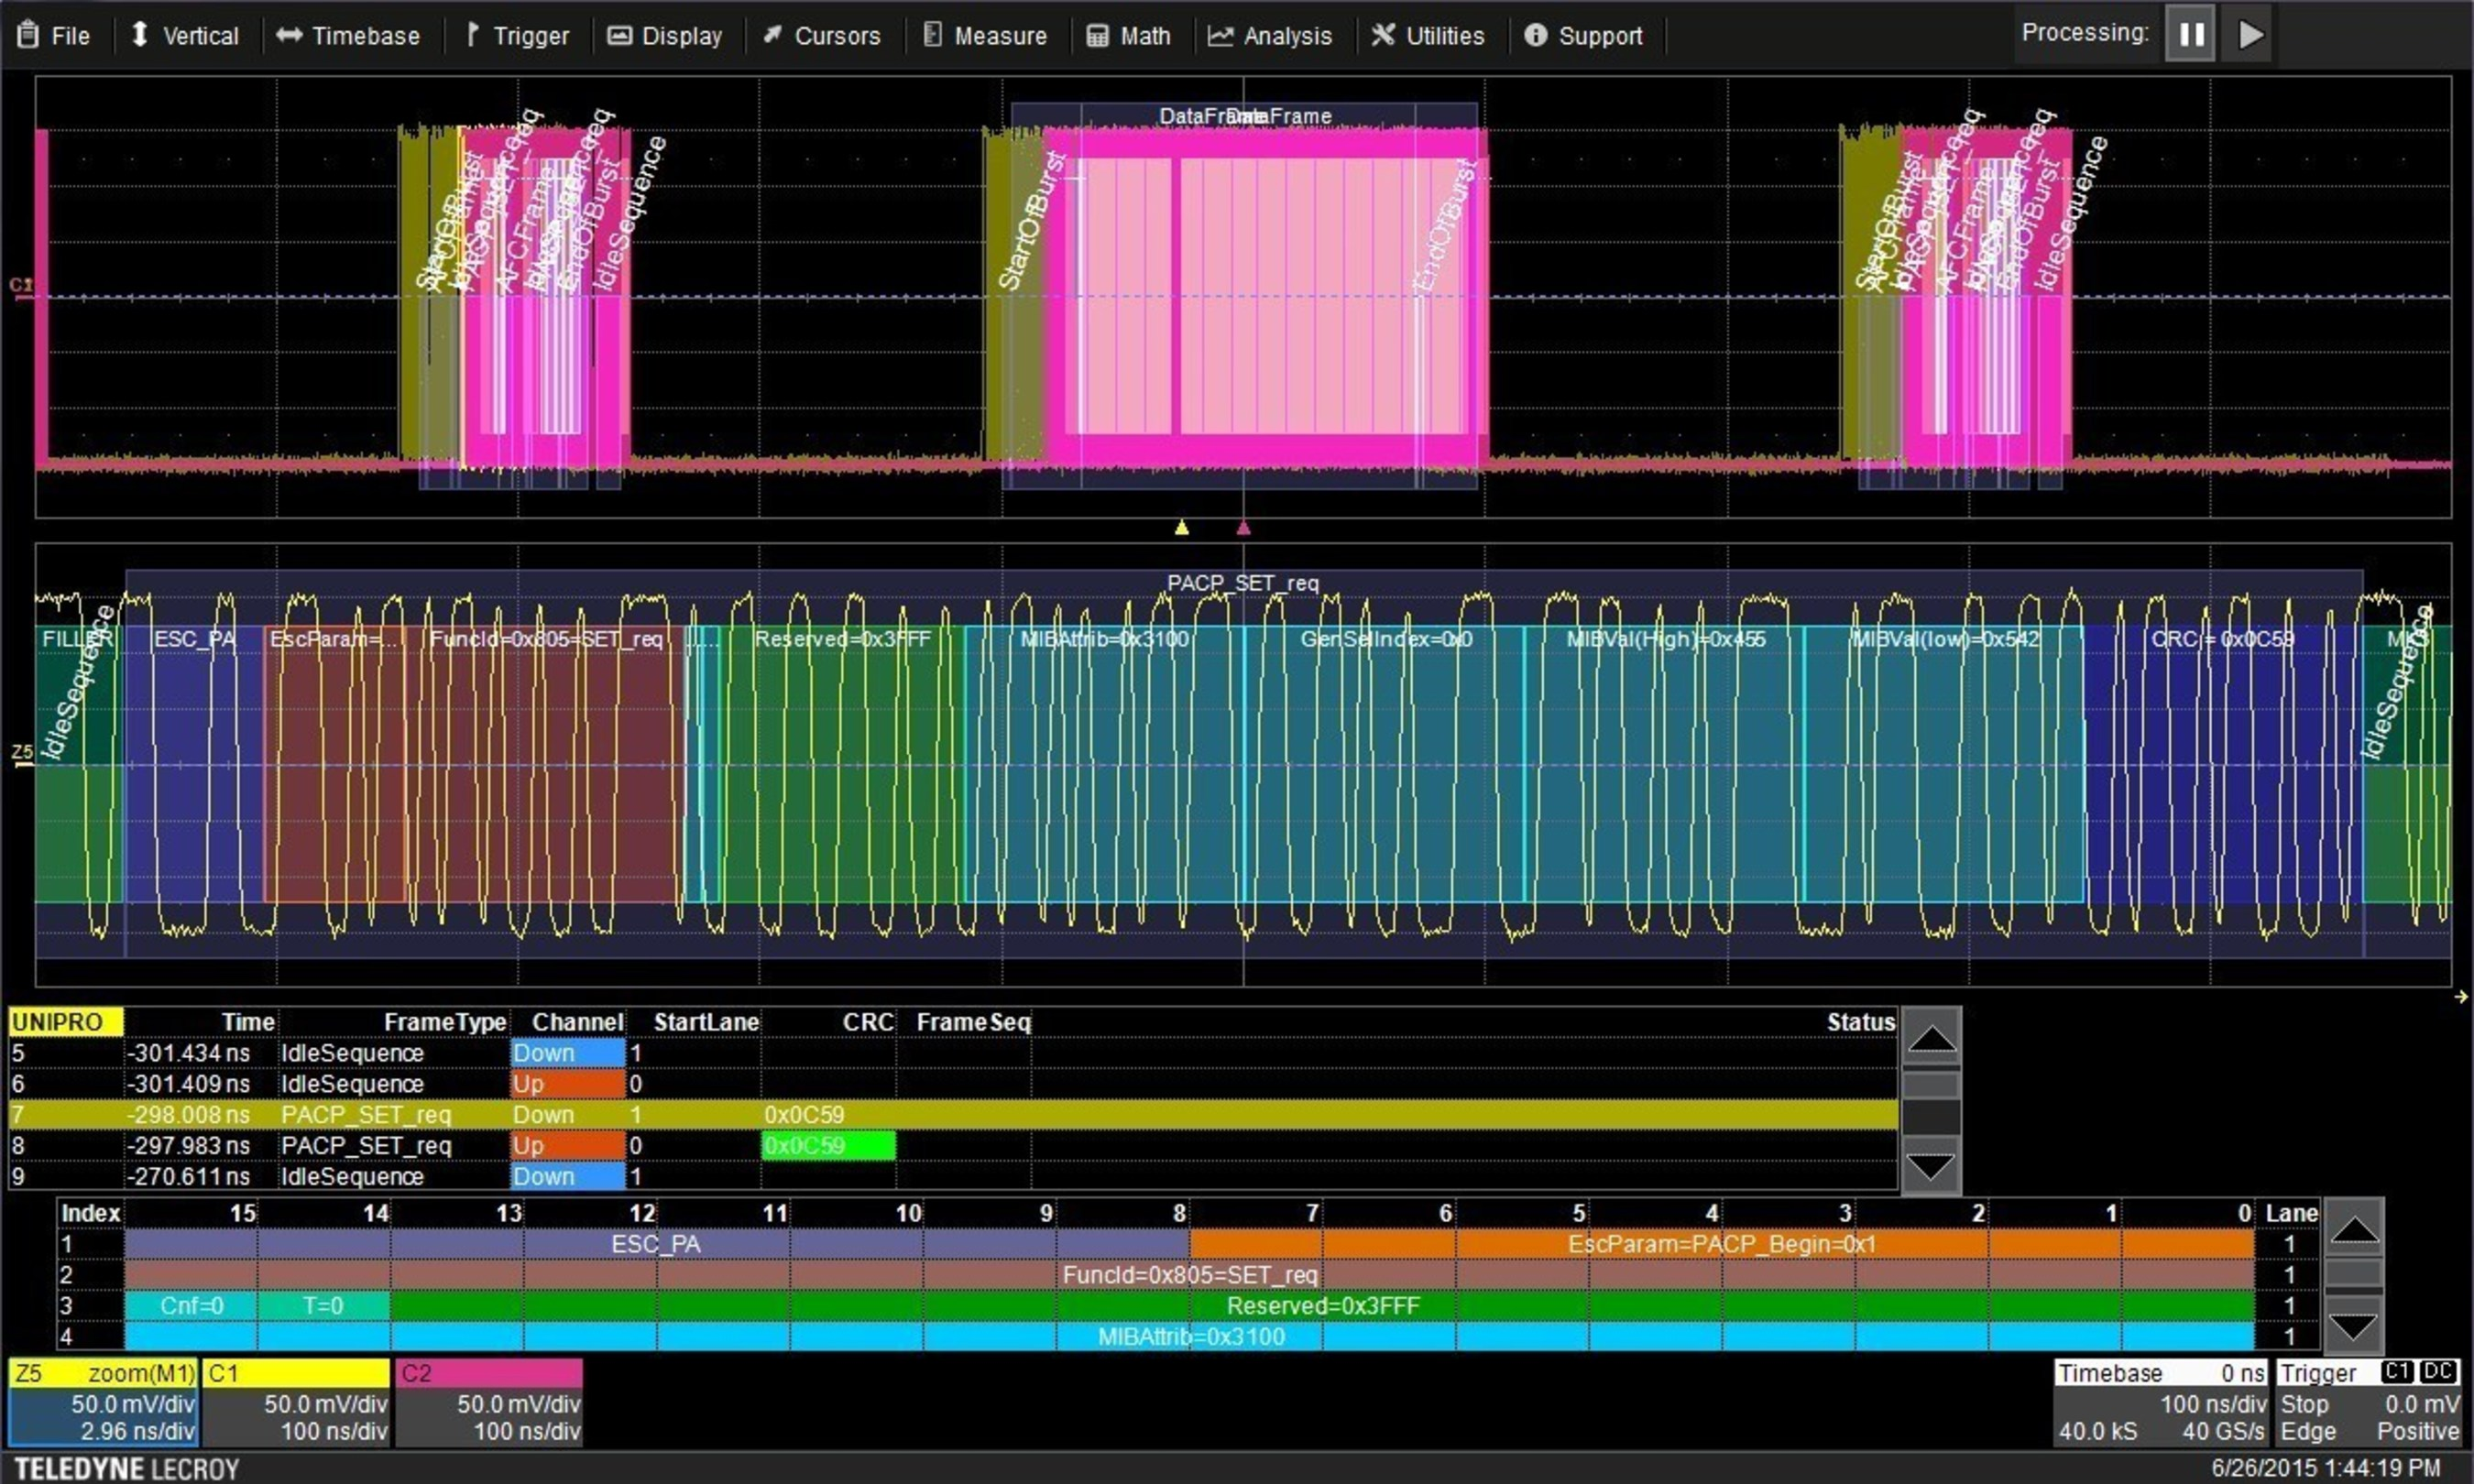 The new MIPI UniPro Protocol Decoder from Teledyne LeCroy analyzes acquired M-PHY analog waveforms and provides insight into multiple levels of UniPro protocol information.